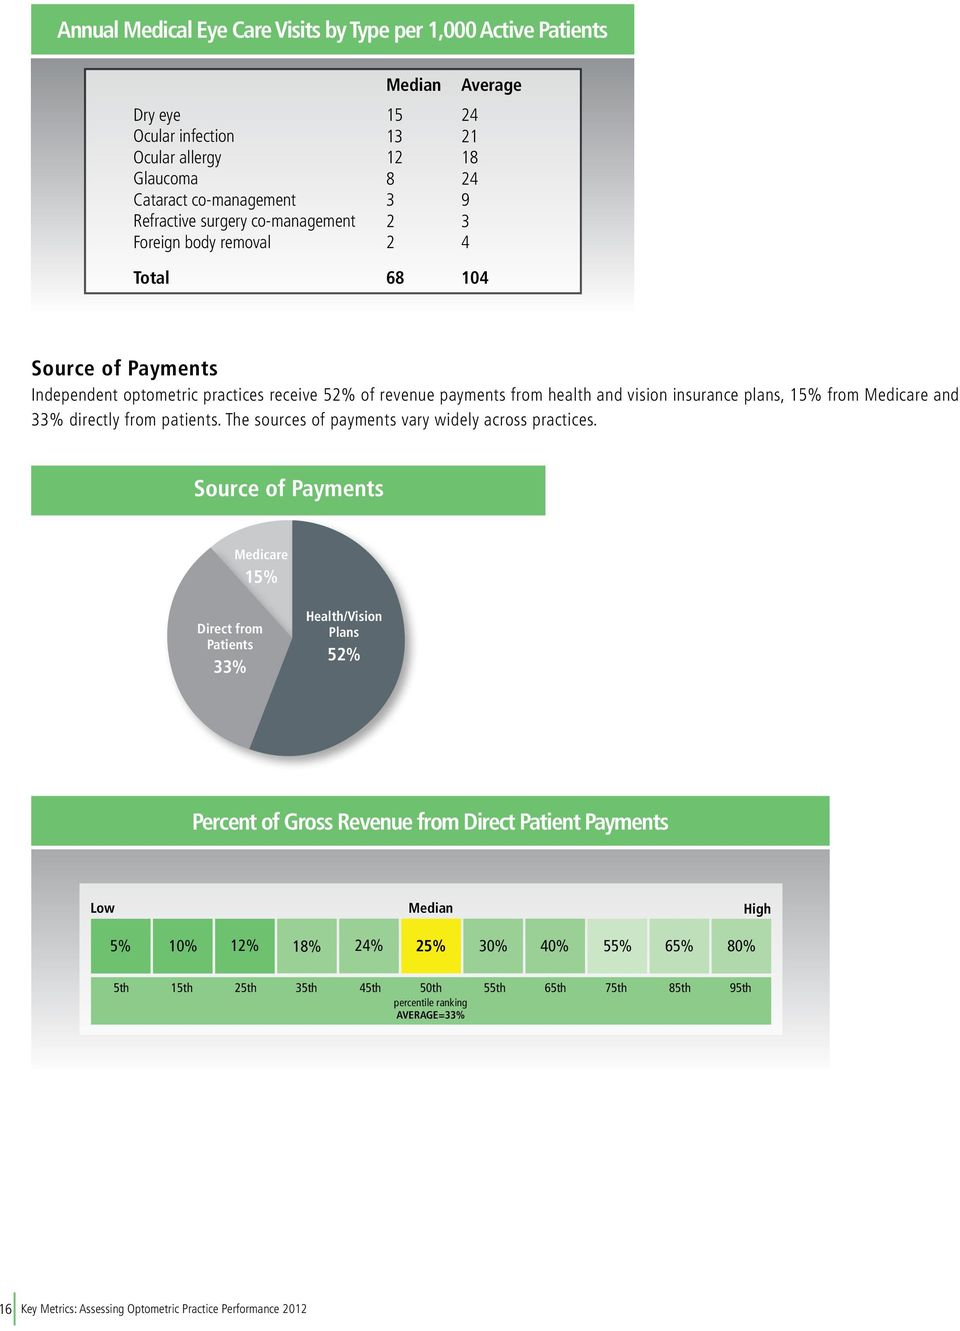 plans, 15% from Medicare and 33% directly from patients. The sources of payments vary widely across practices.